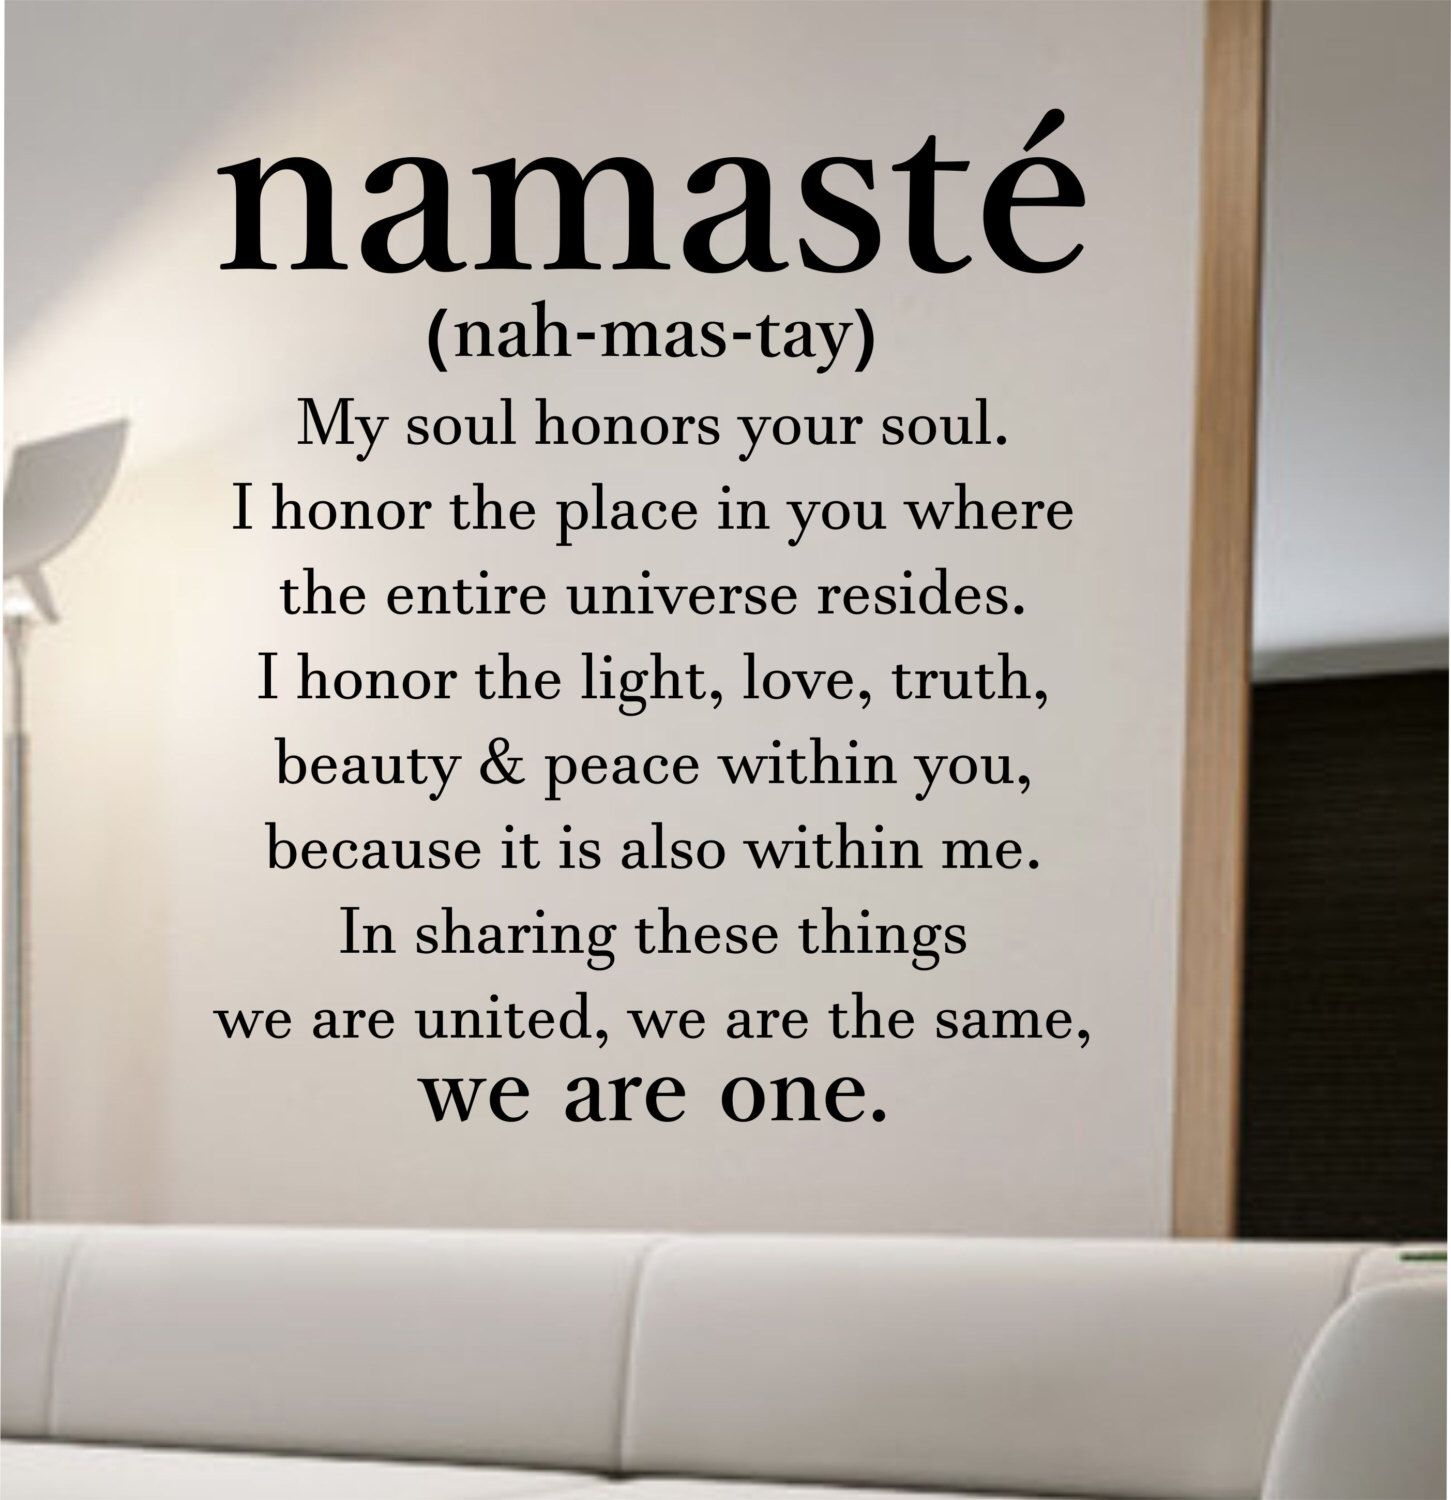 Namaste Definition Quote Wall Decal Vinyl Sticker Art Decor Bedroom Design Mural Home Room Trendy Modern Yoga Peace Love